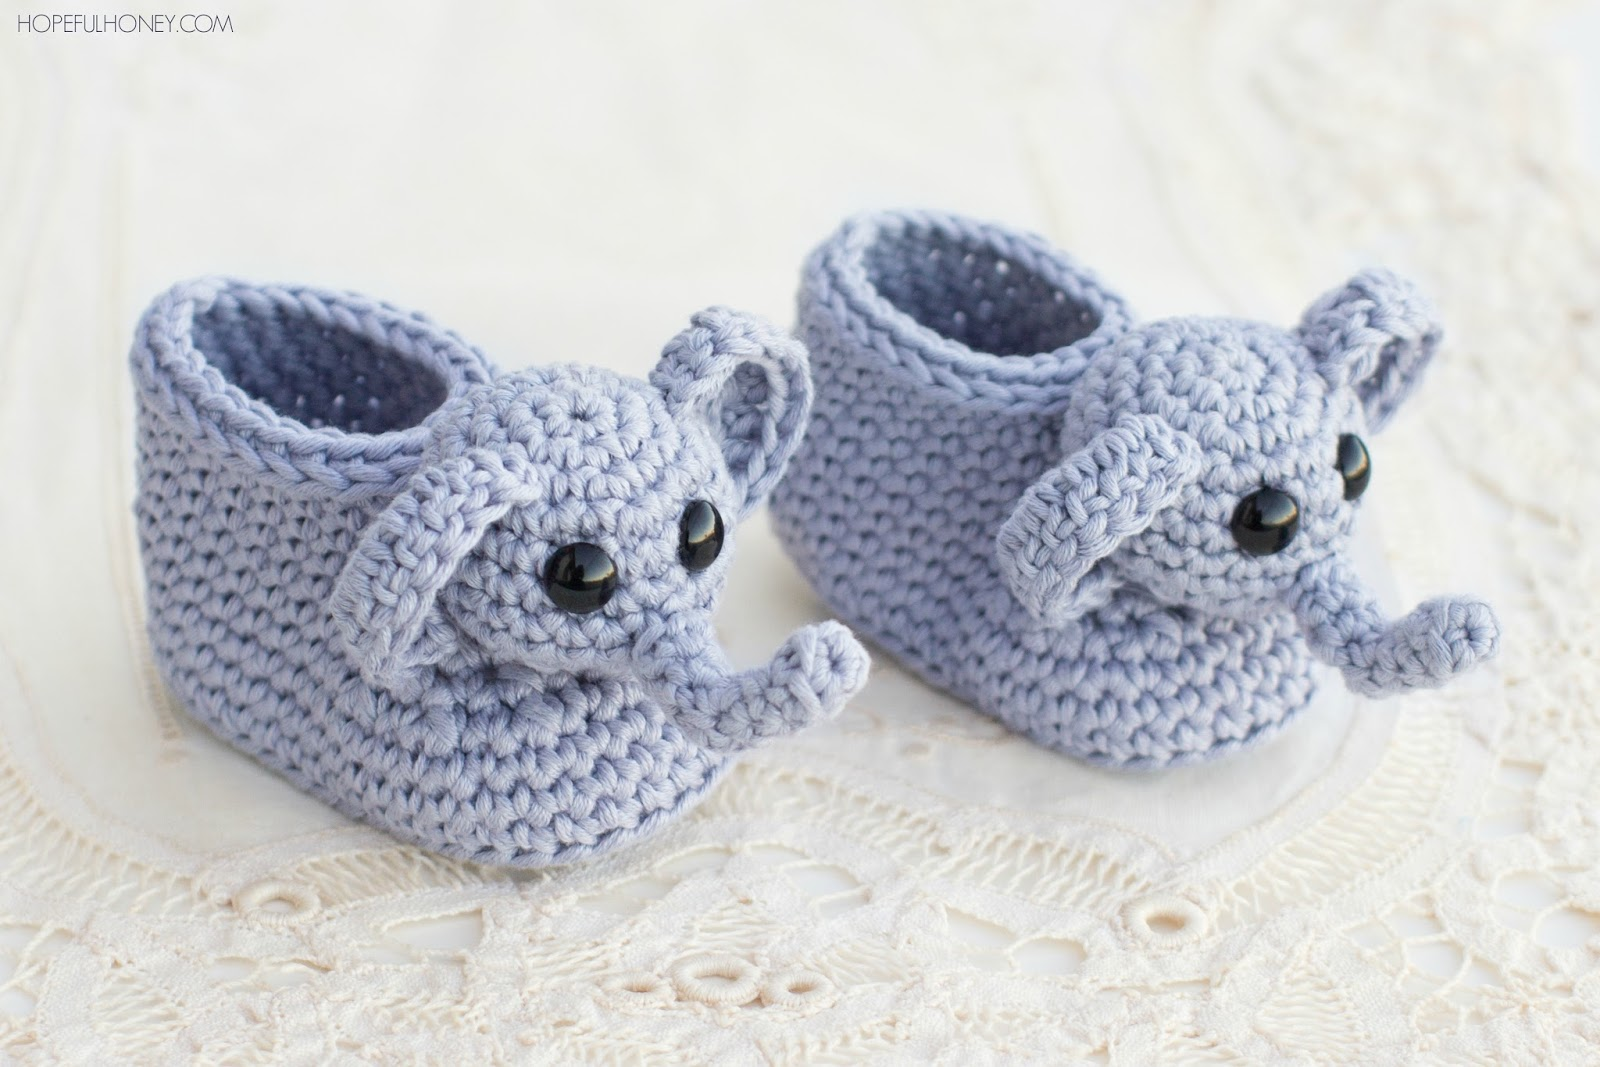 Free Crochet Pattern Of Baby Booties : Hopeful Honey Craft, Crochet, Create: Ellie The Elephant ...